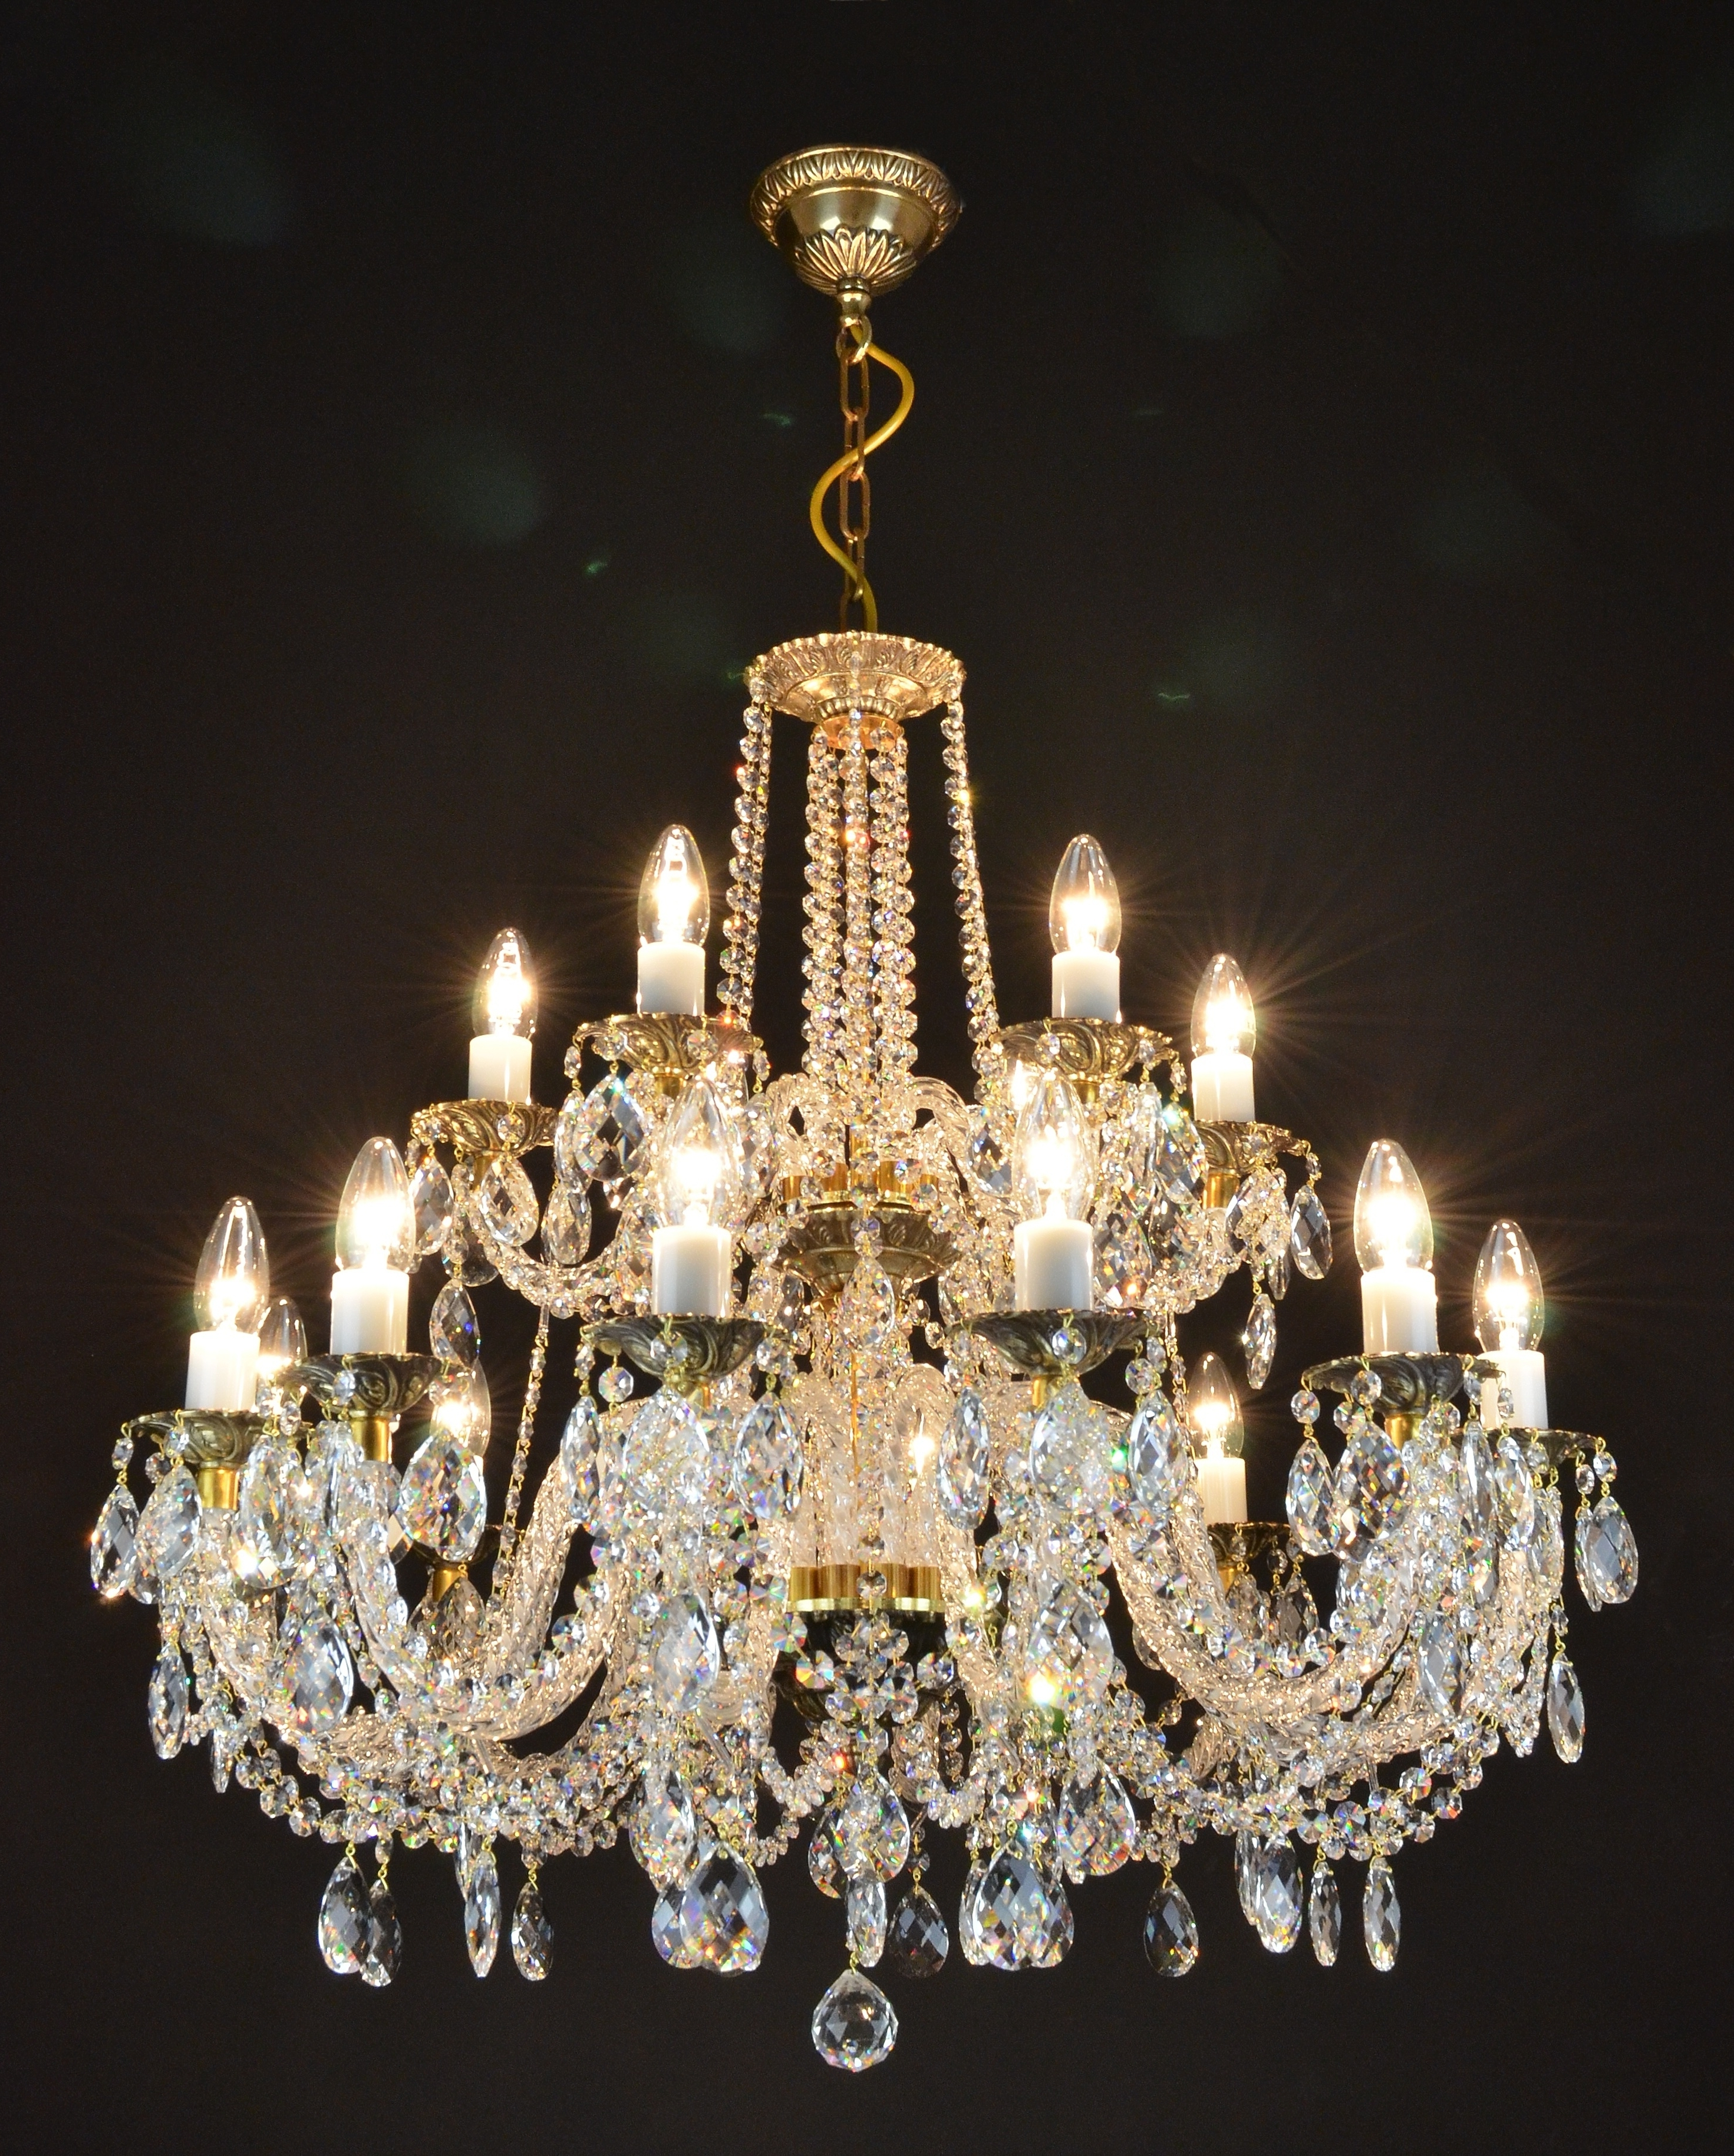 Lead Crystal Chandeliers In Well Liked Free Images : Lighting, Decor, Light Fixture, Swarovski, Crystal (View 7 of 20)